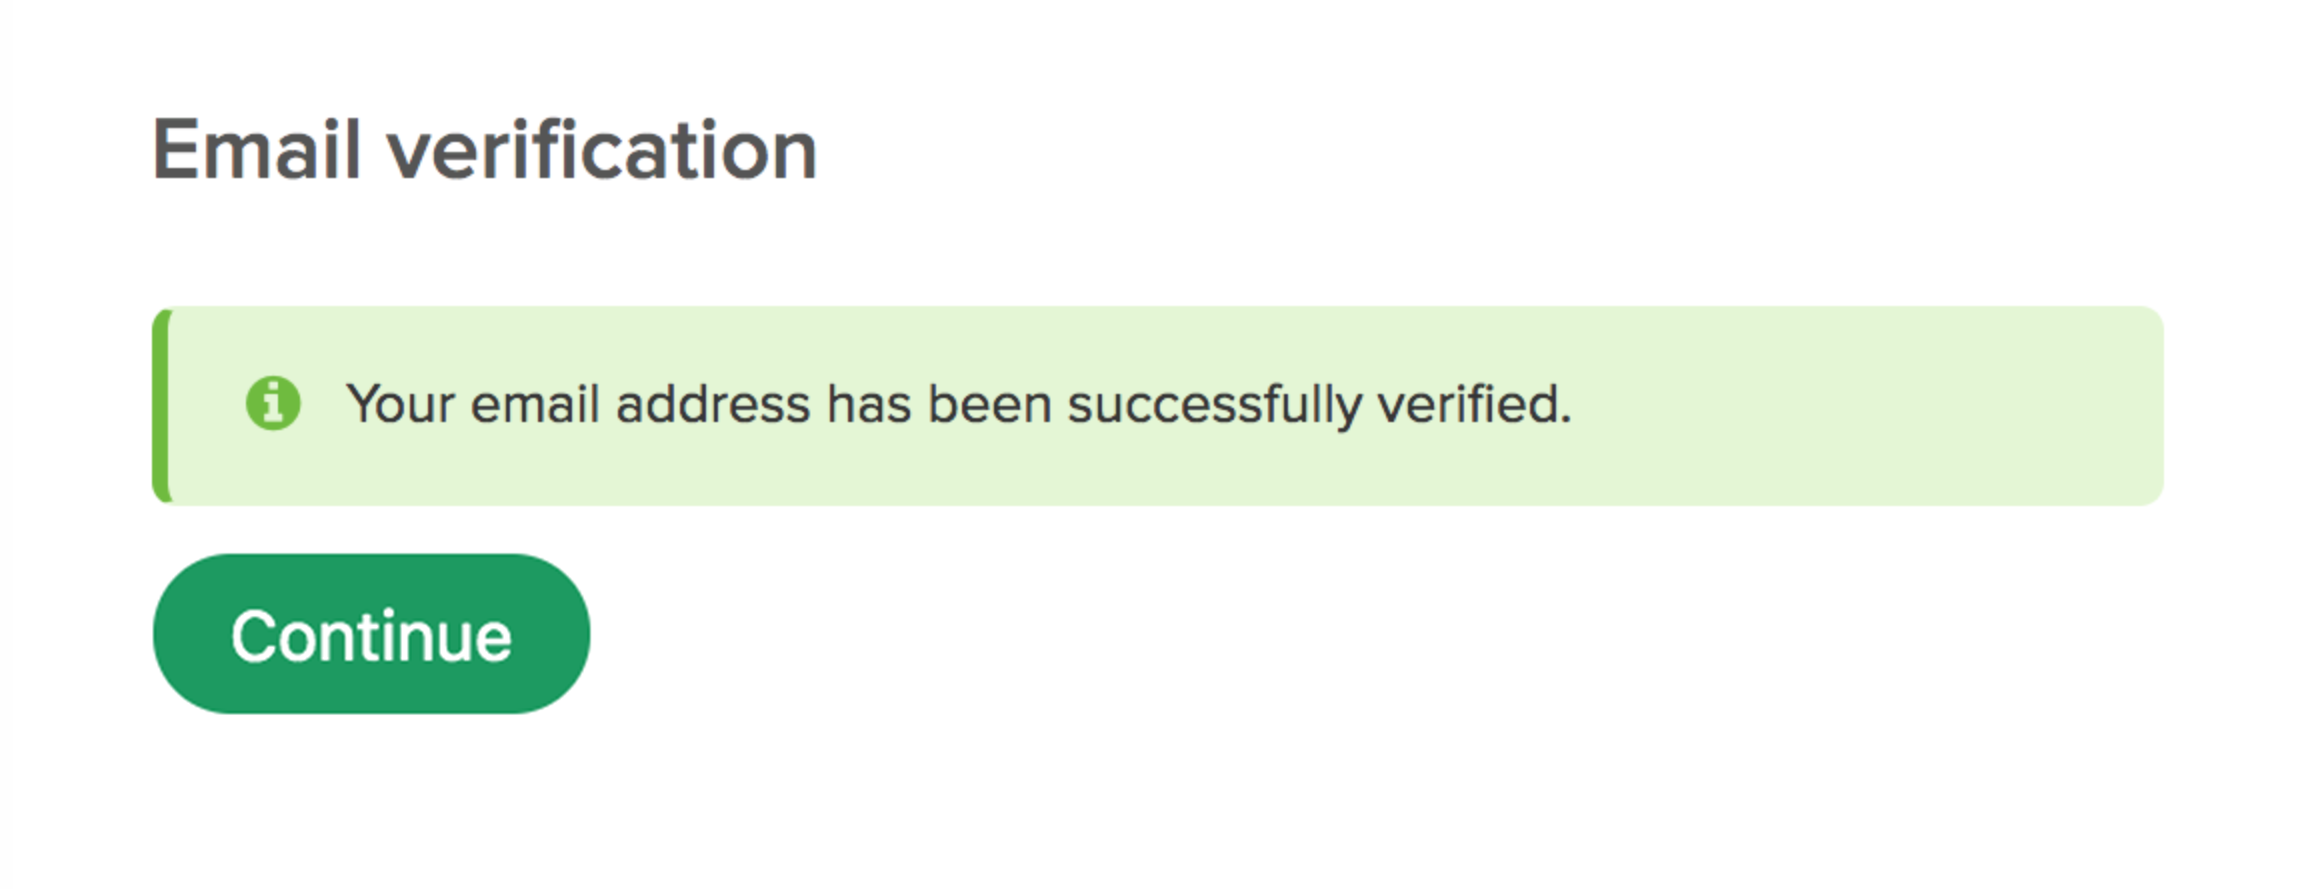 Email verification success message